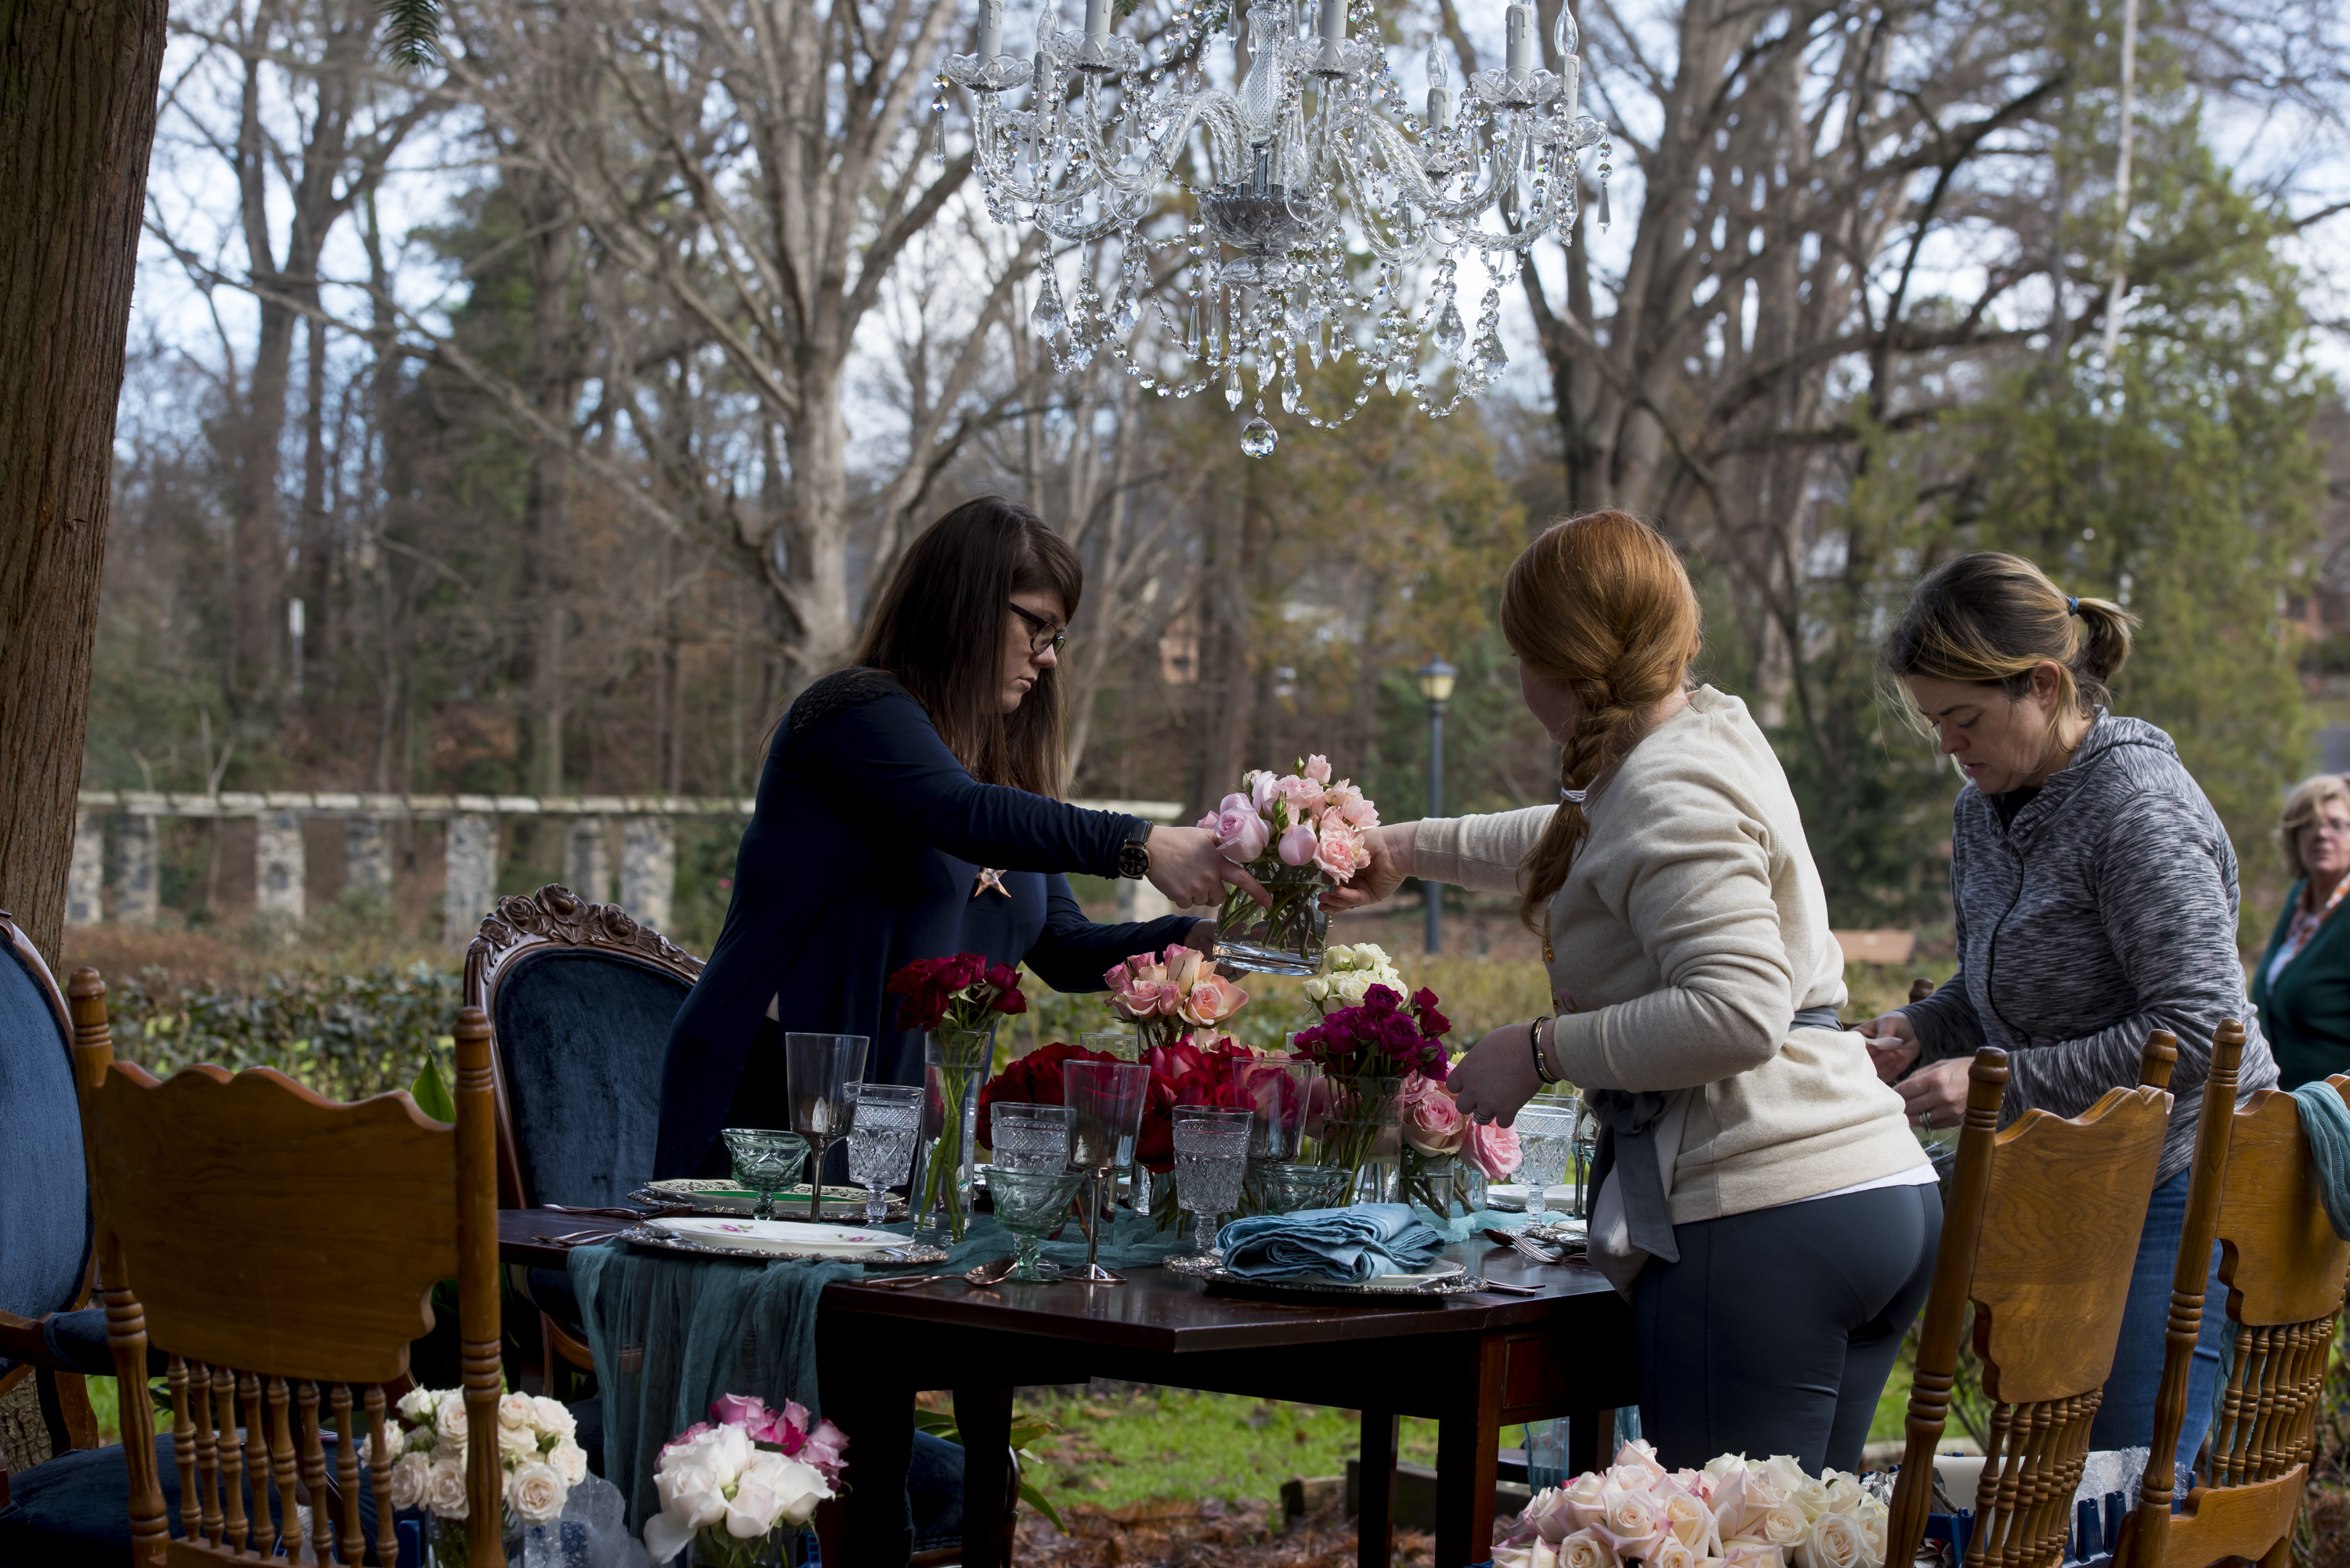 setting up a table with floral centerpieces for a styled shoot